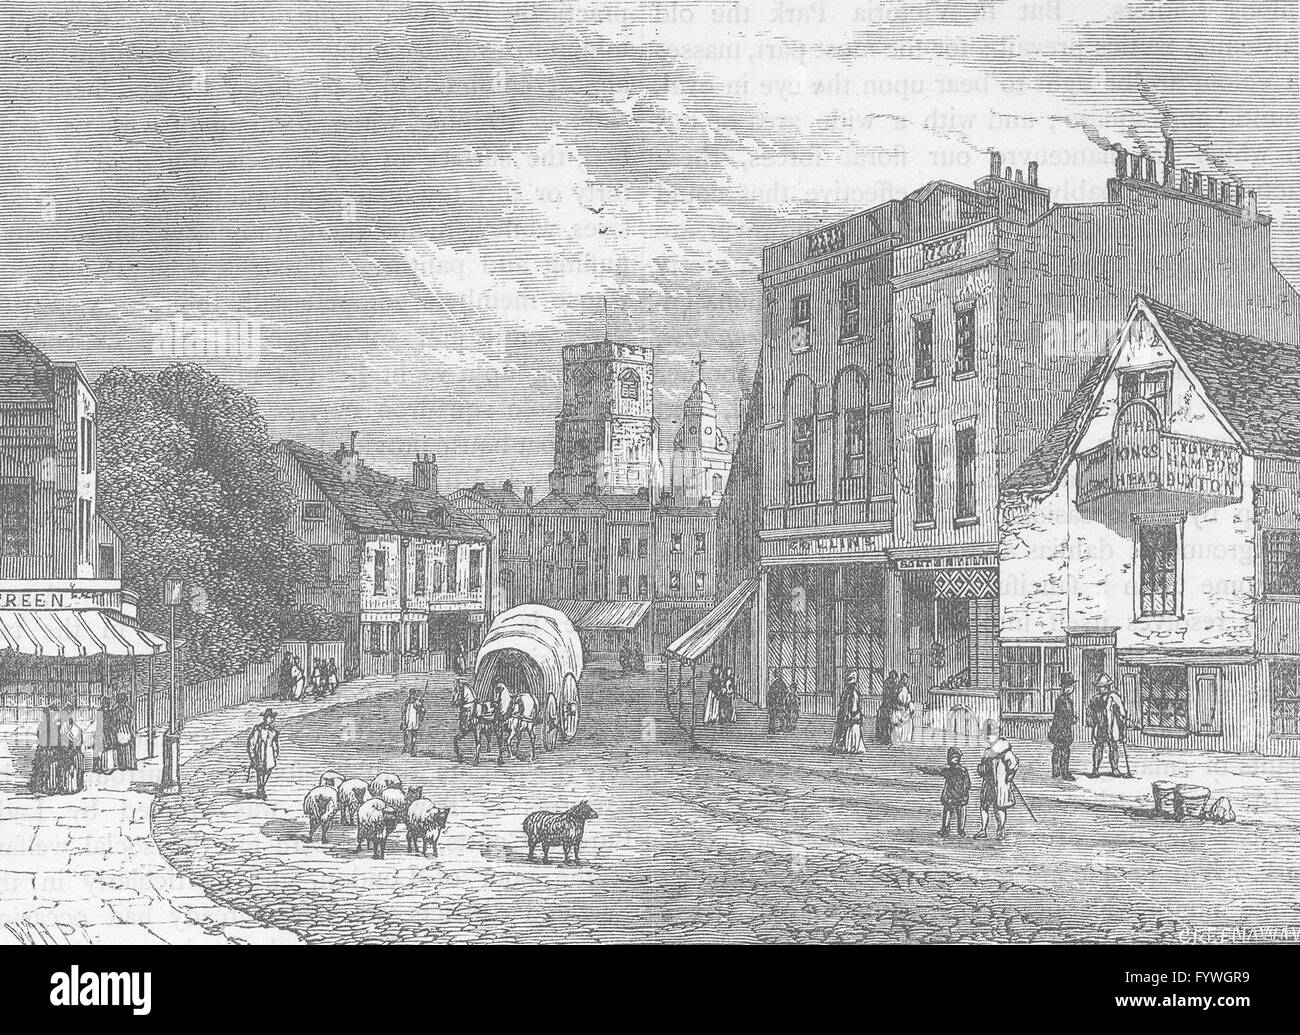 HACKNEY: Hackney, looking towards the church, 1840. London, old print c1880